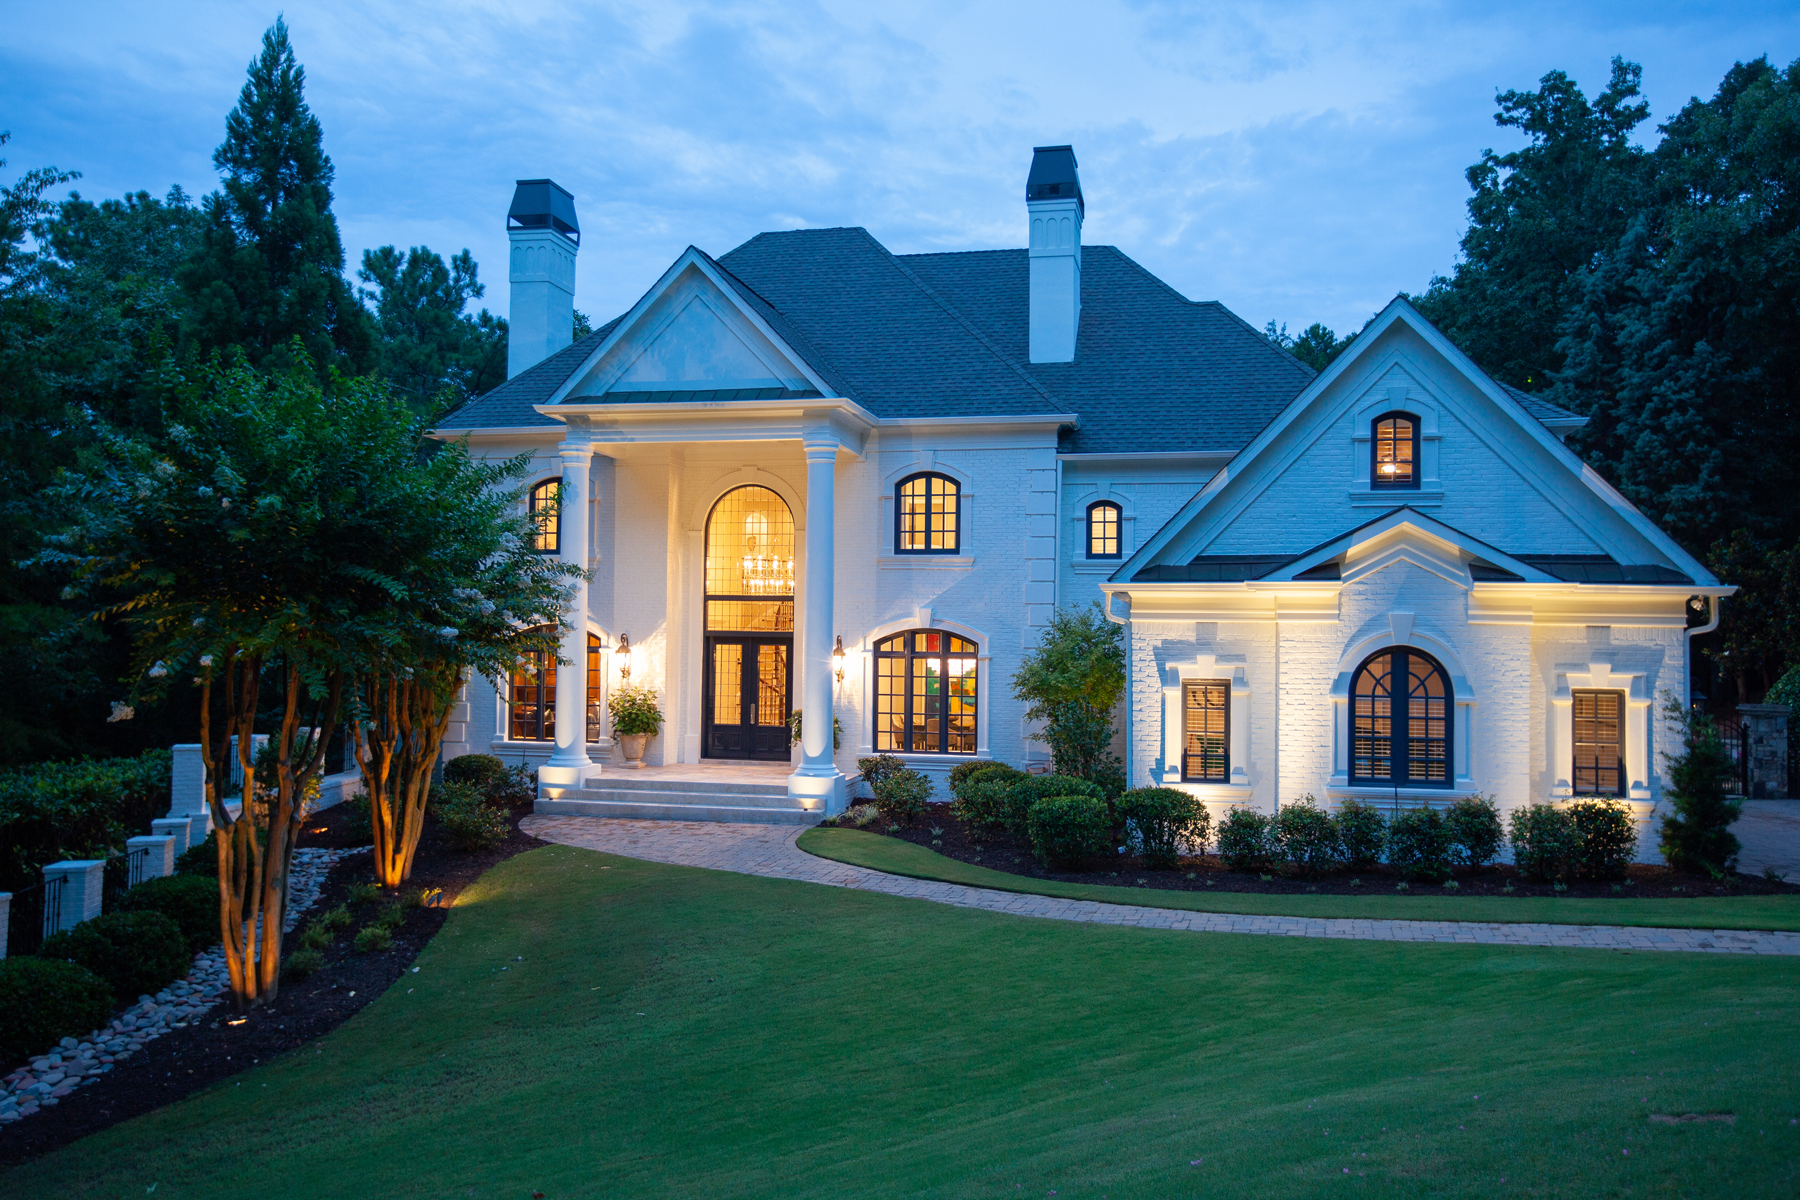 一戸建て のために 売買 アット Exceptional Better Than New Country Club Of The South Estate 8957 Old Southwick Pass Johns Creek, ジョージア 30022 アメリカ合衆国